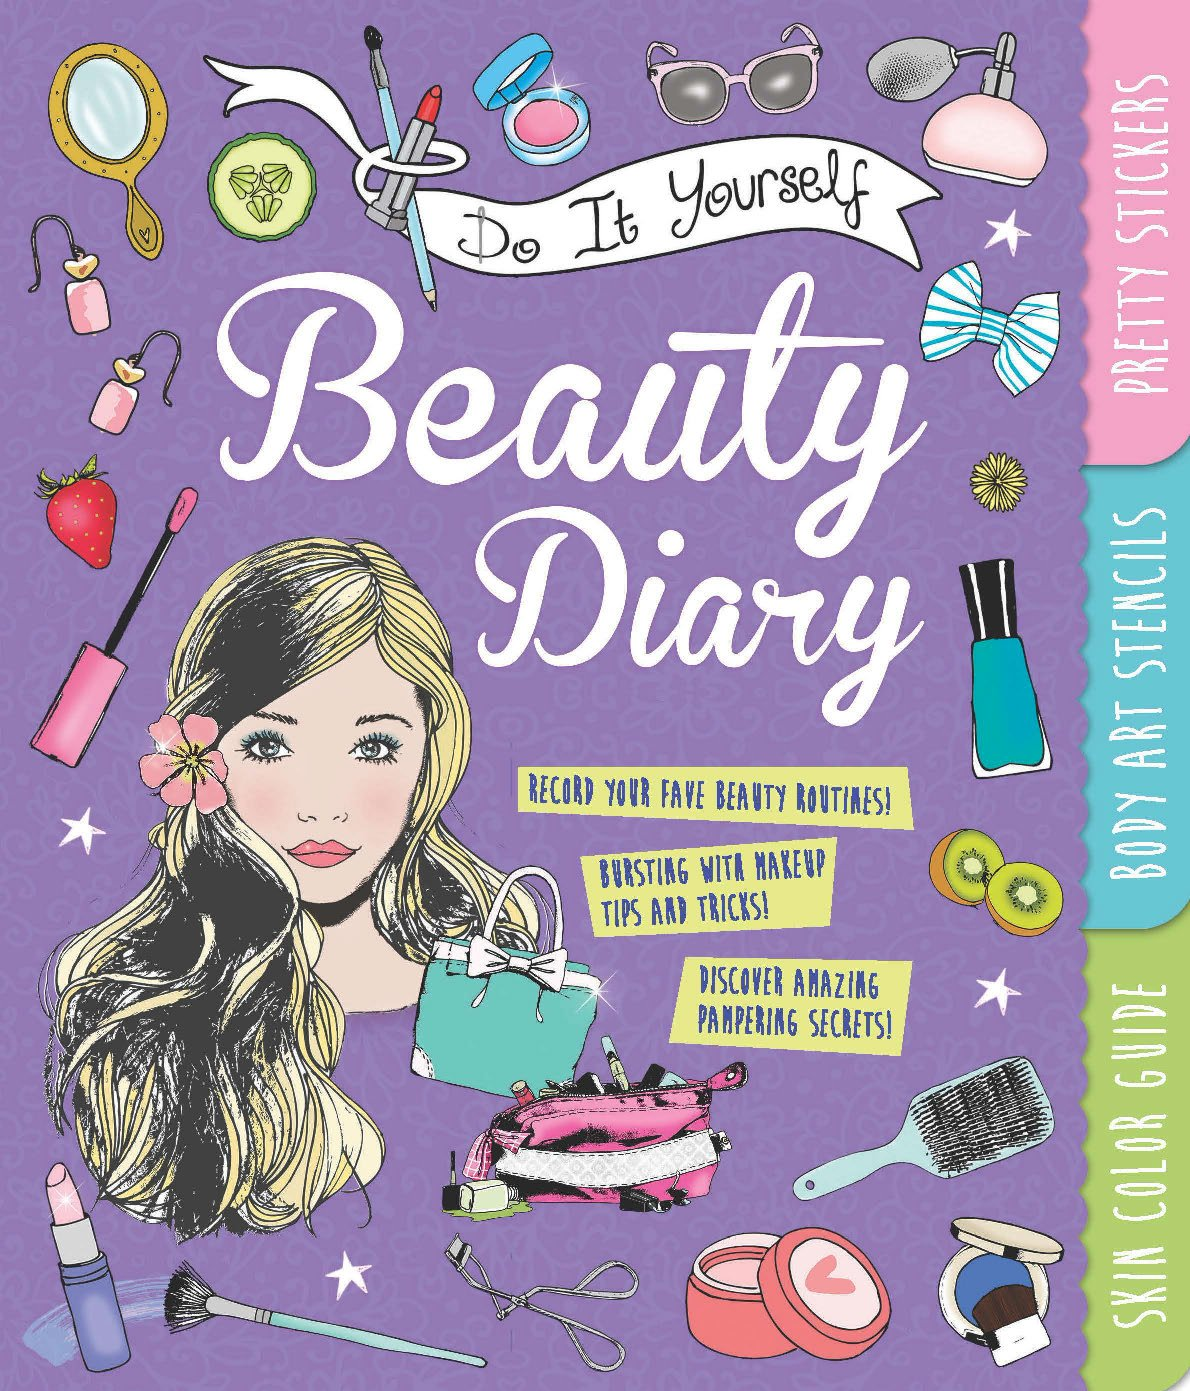 Do it yourself beauty diary with pretty stickers body art stencils do it yourself beauty diary with pretty stickers body art stencils and a skin color guide amazon caroline rowlands 9781438006161 books solutioingenieria Choice Image